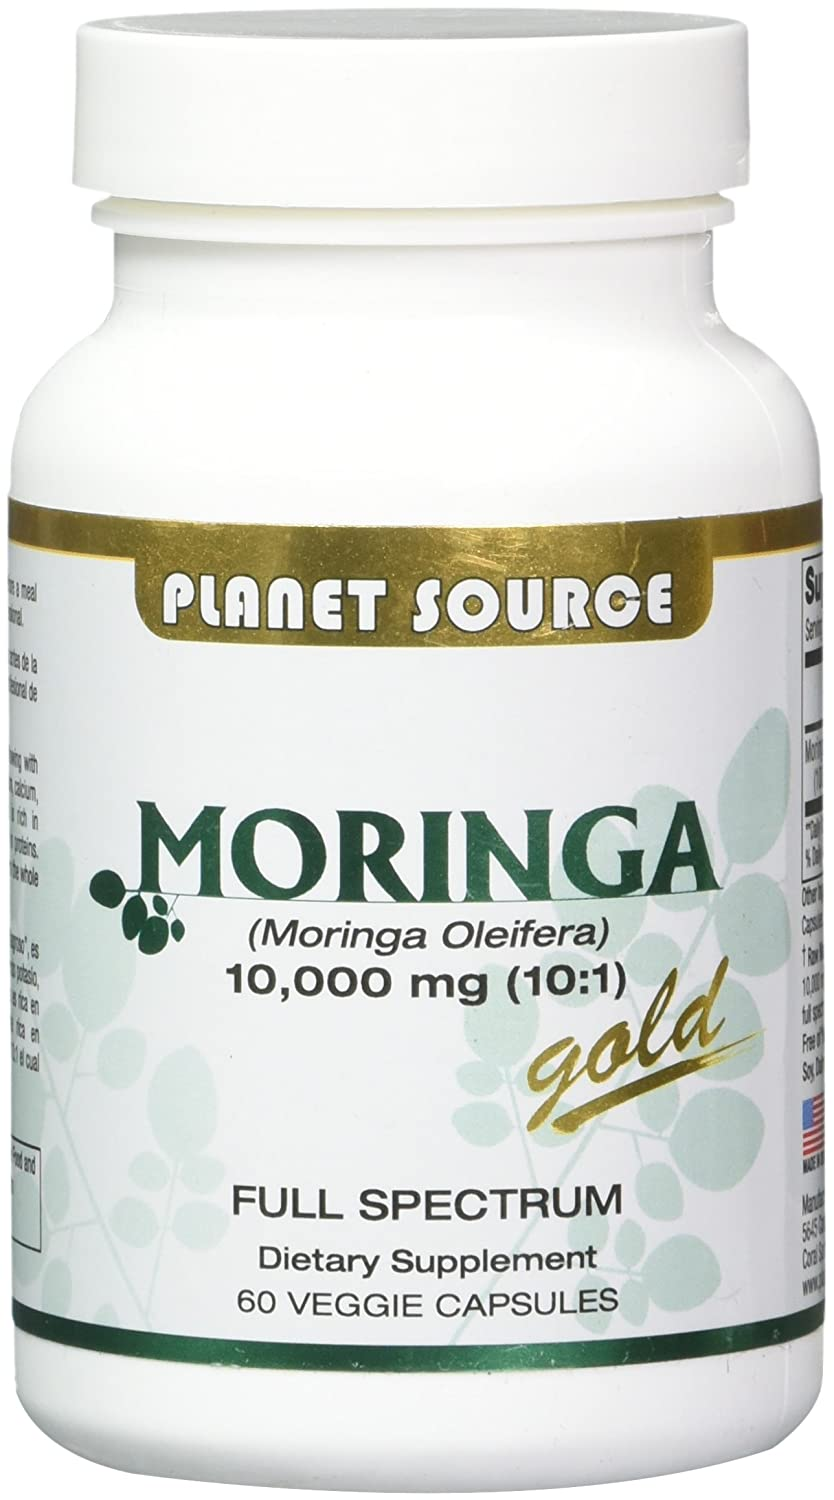 Amazon.com: Planet Source Moringa Oleifera Gold 60 Vegetable Capsules, Full Spectrum 10,000 mg.: Health & Personal Care